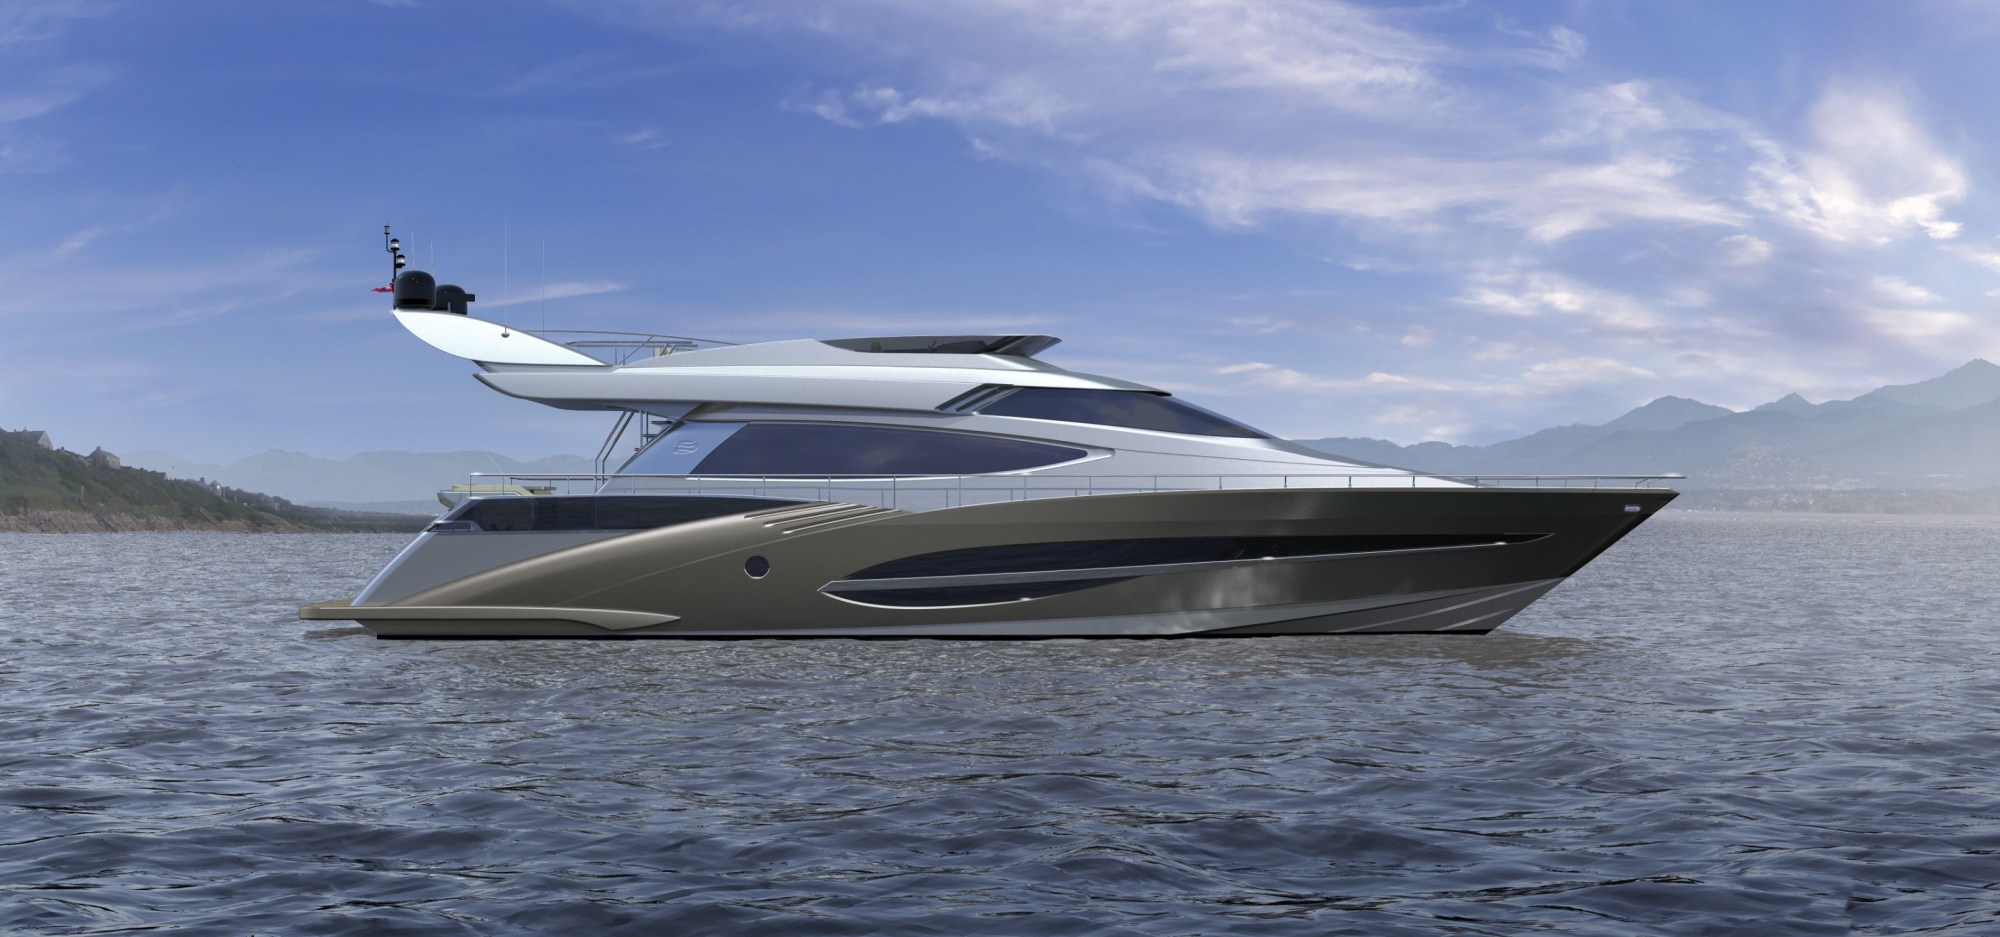 hight resolution of 72 motor yacht by joachim kinder design to premiere at the dubai boat show 2012 yacht charter superyacht news